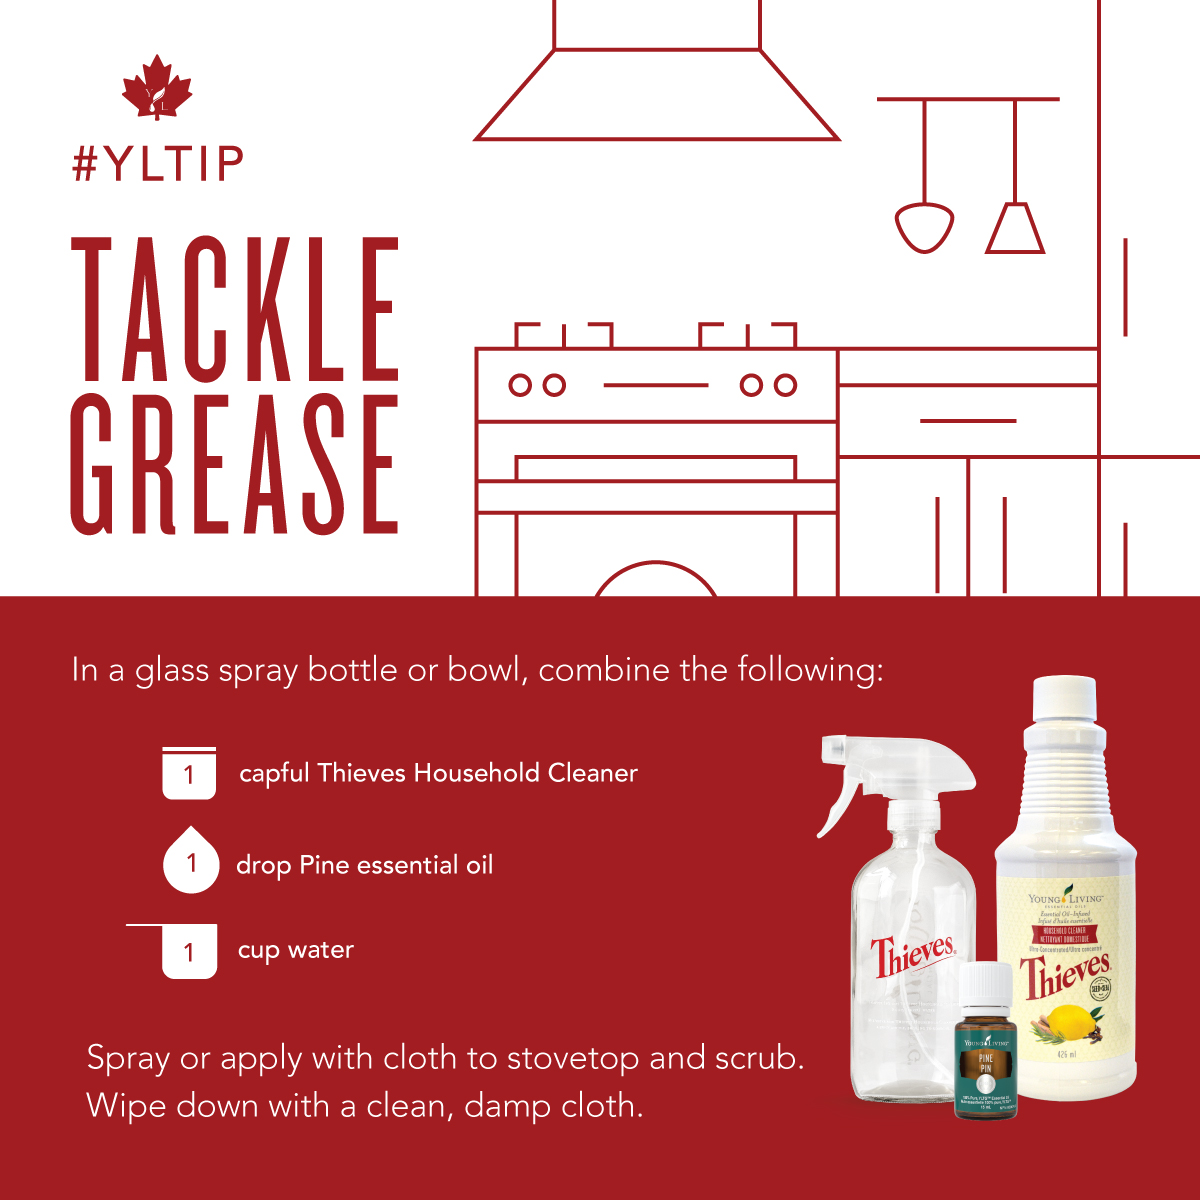 How To Make 25 Diy Cleaners With One Bottle Of Thieves Household Cleaner Young Living Canada Blog